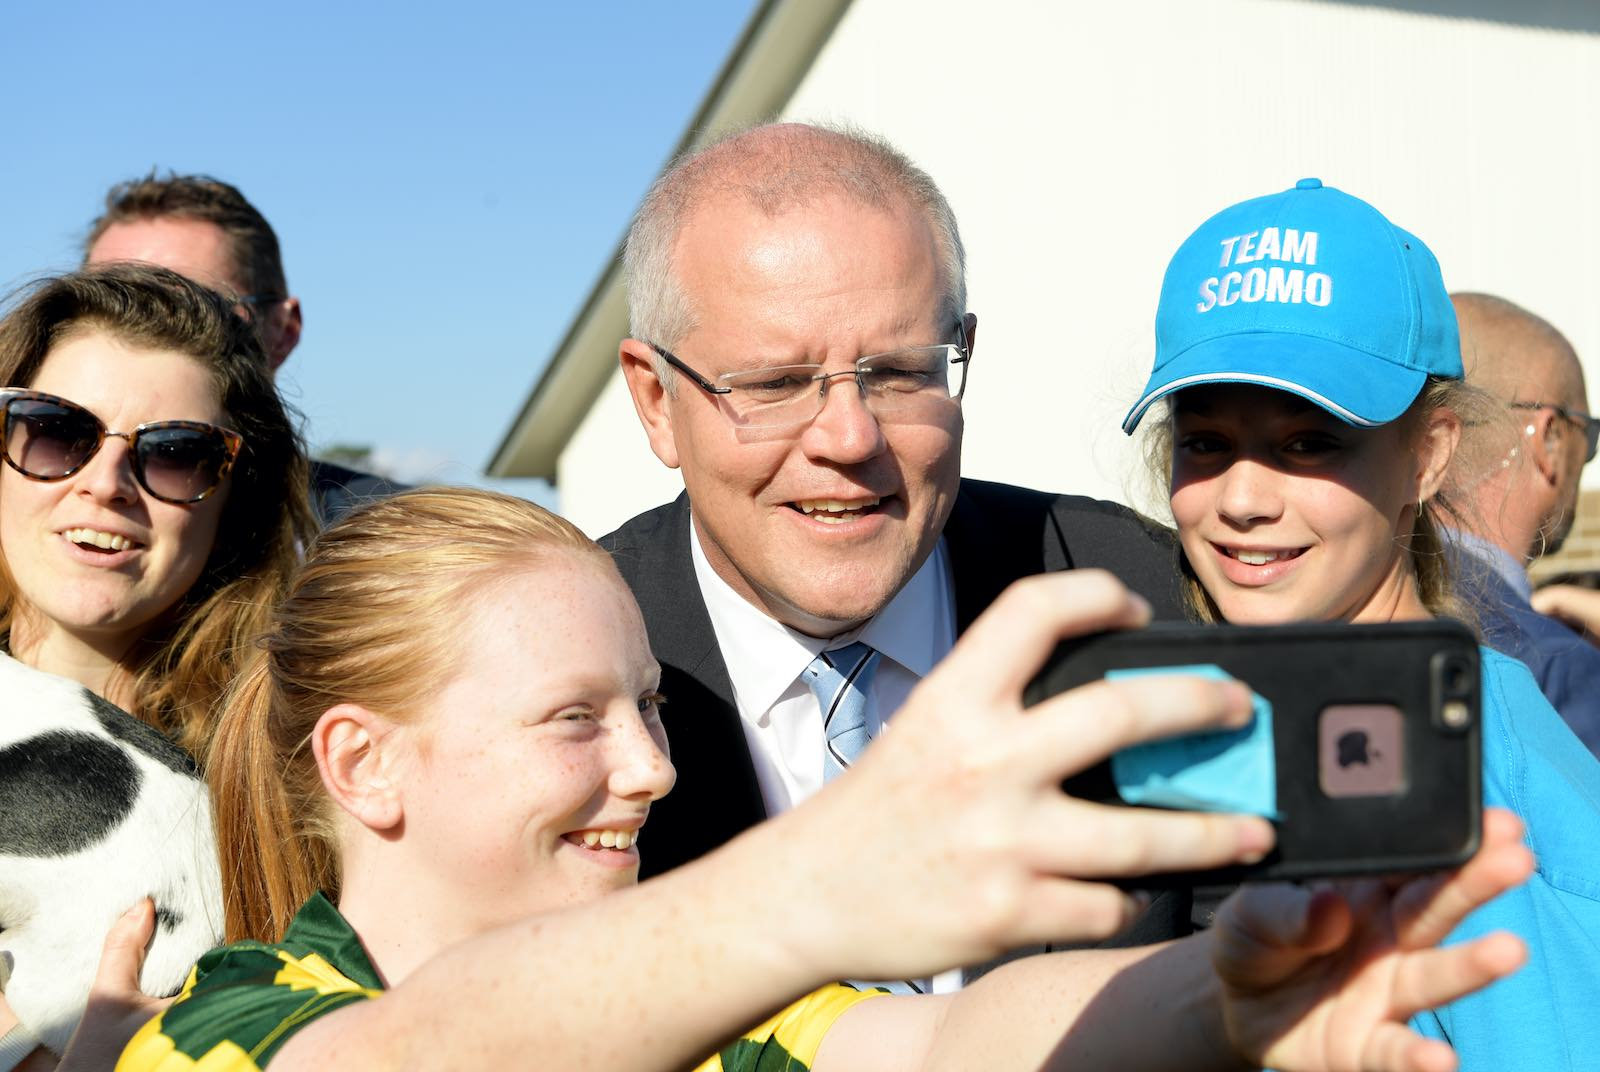 Prime Minister Scott Morrison poses for a pic after he cast his vote at Lilli Pilli Public School, Cronulla, NSW, 18 May 2019 (Tracey Nearmy/Getty Images)